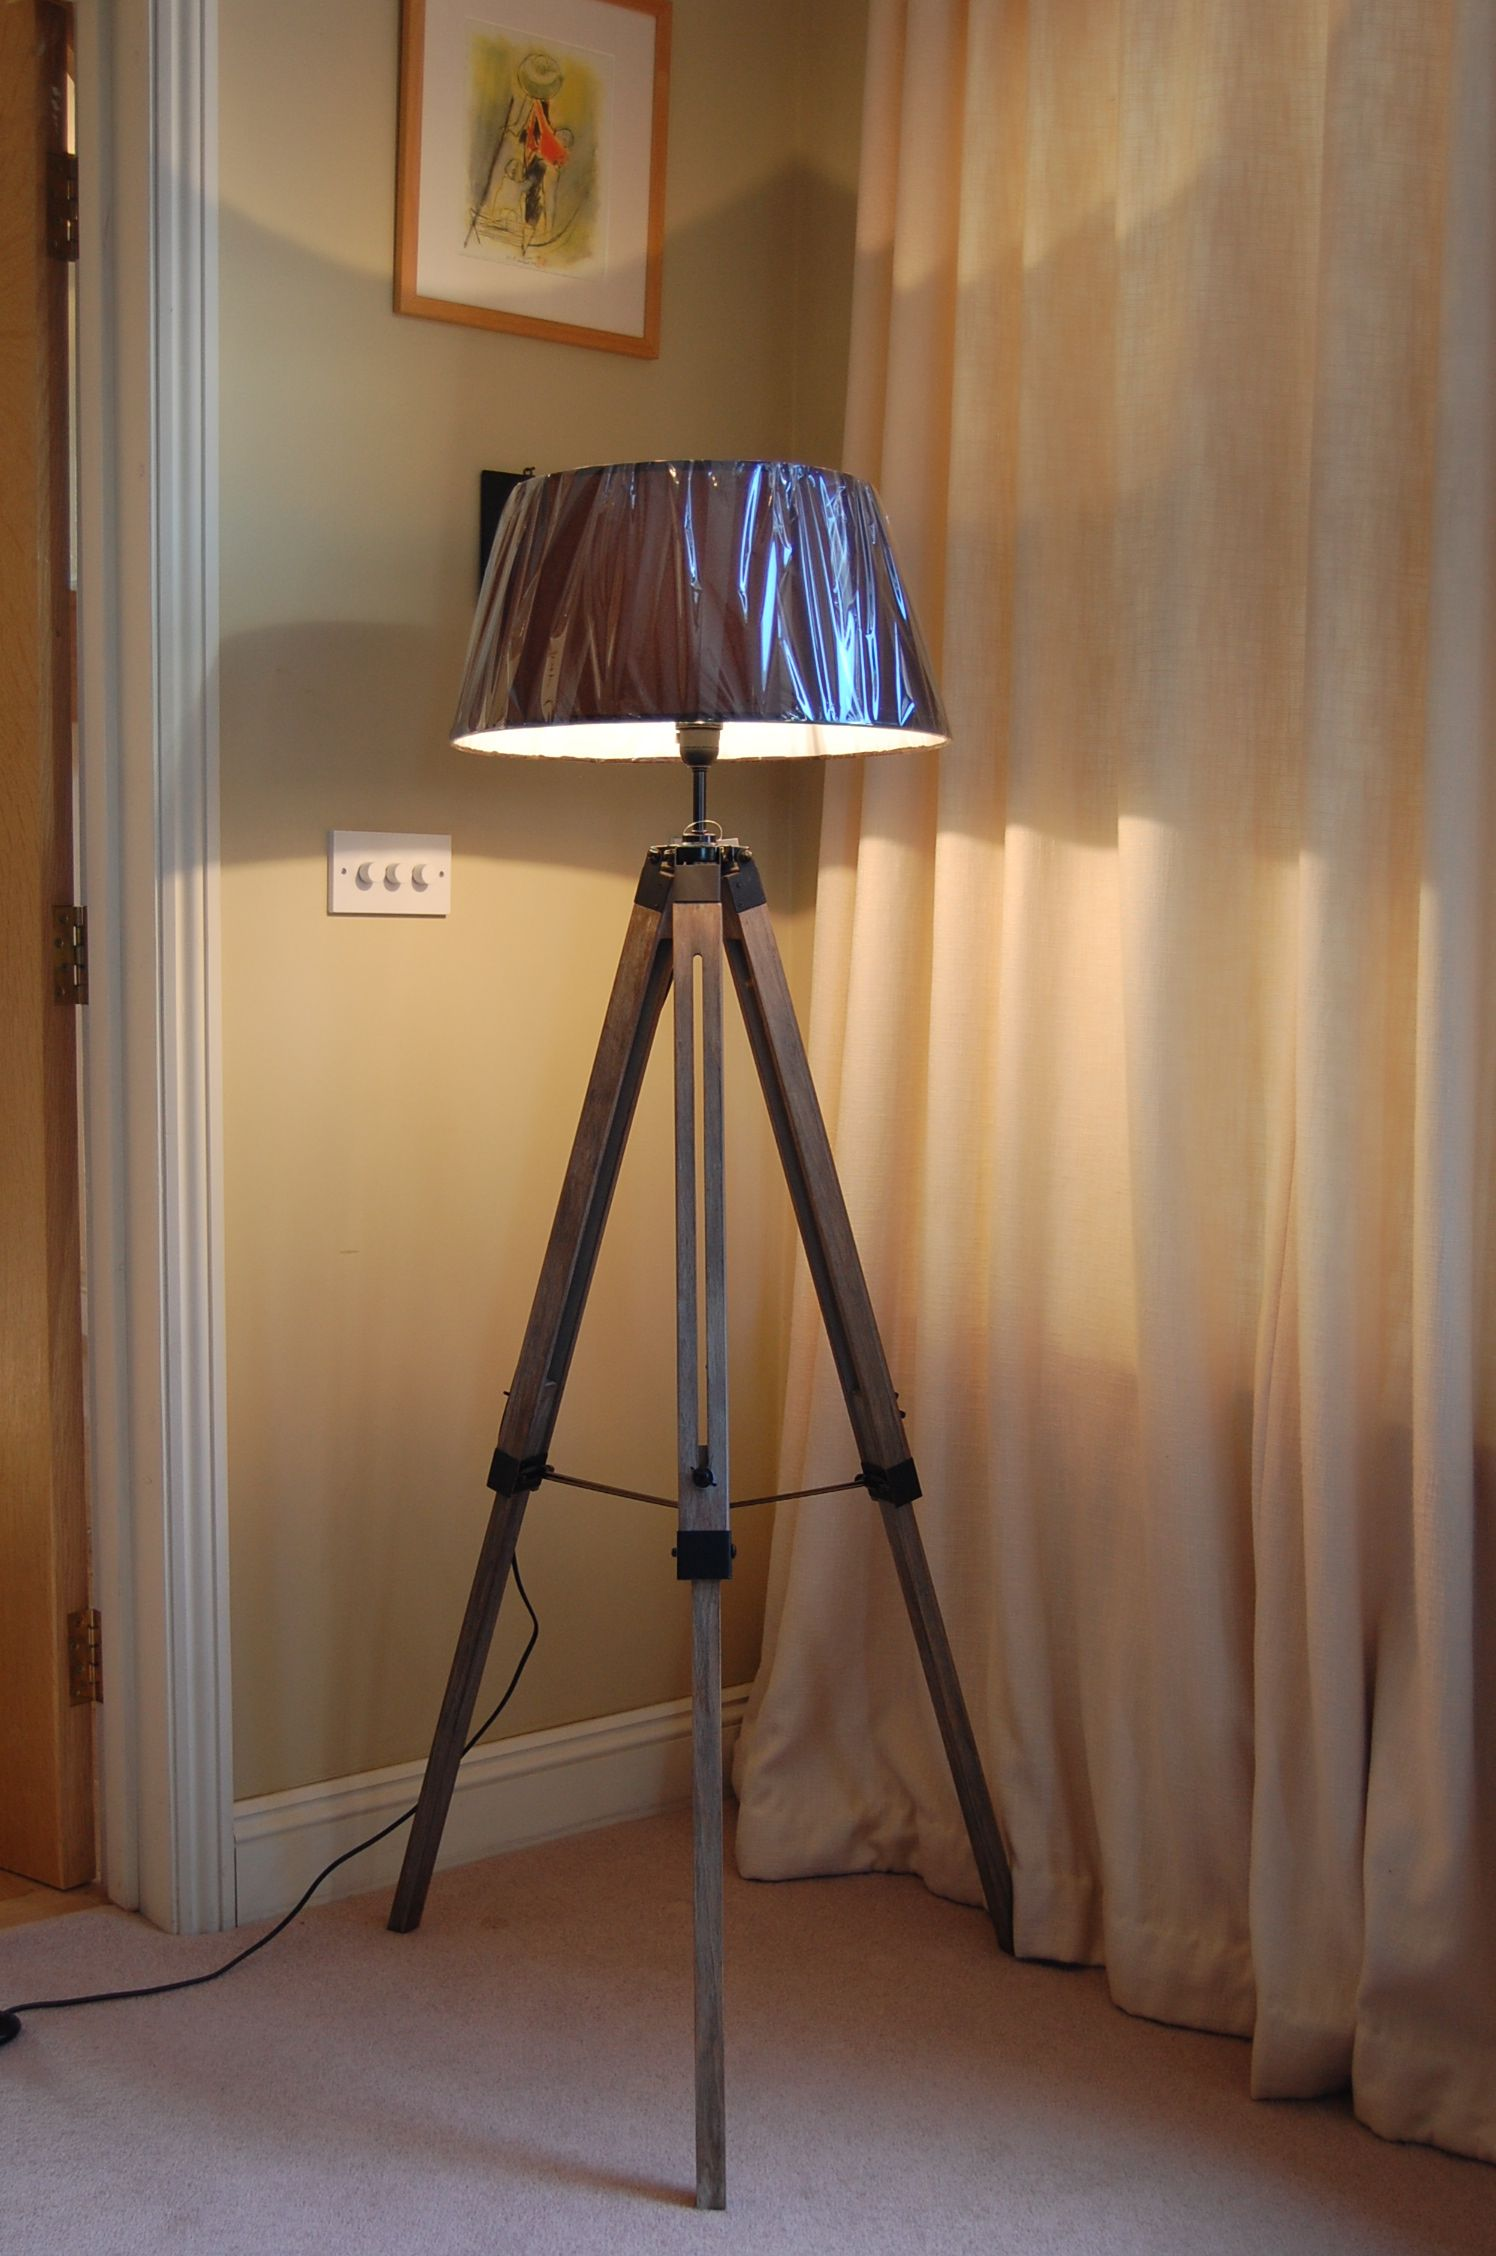 Tripod Lamp | Swing Arm Floor Lamp | Floor Lamp with Storage